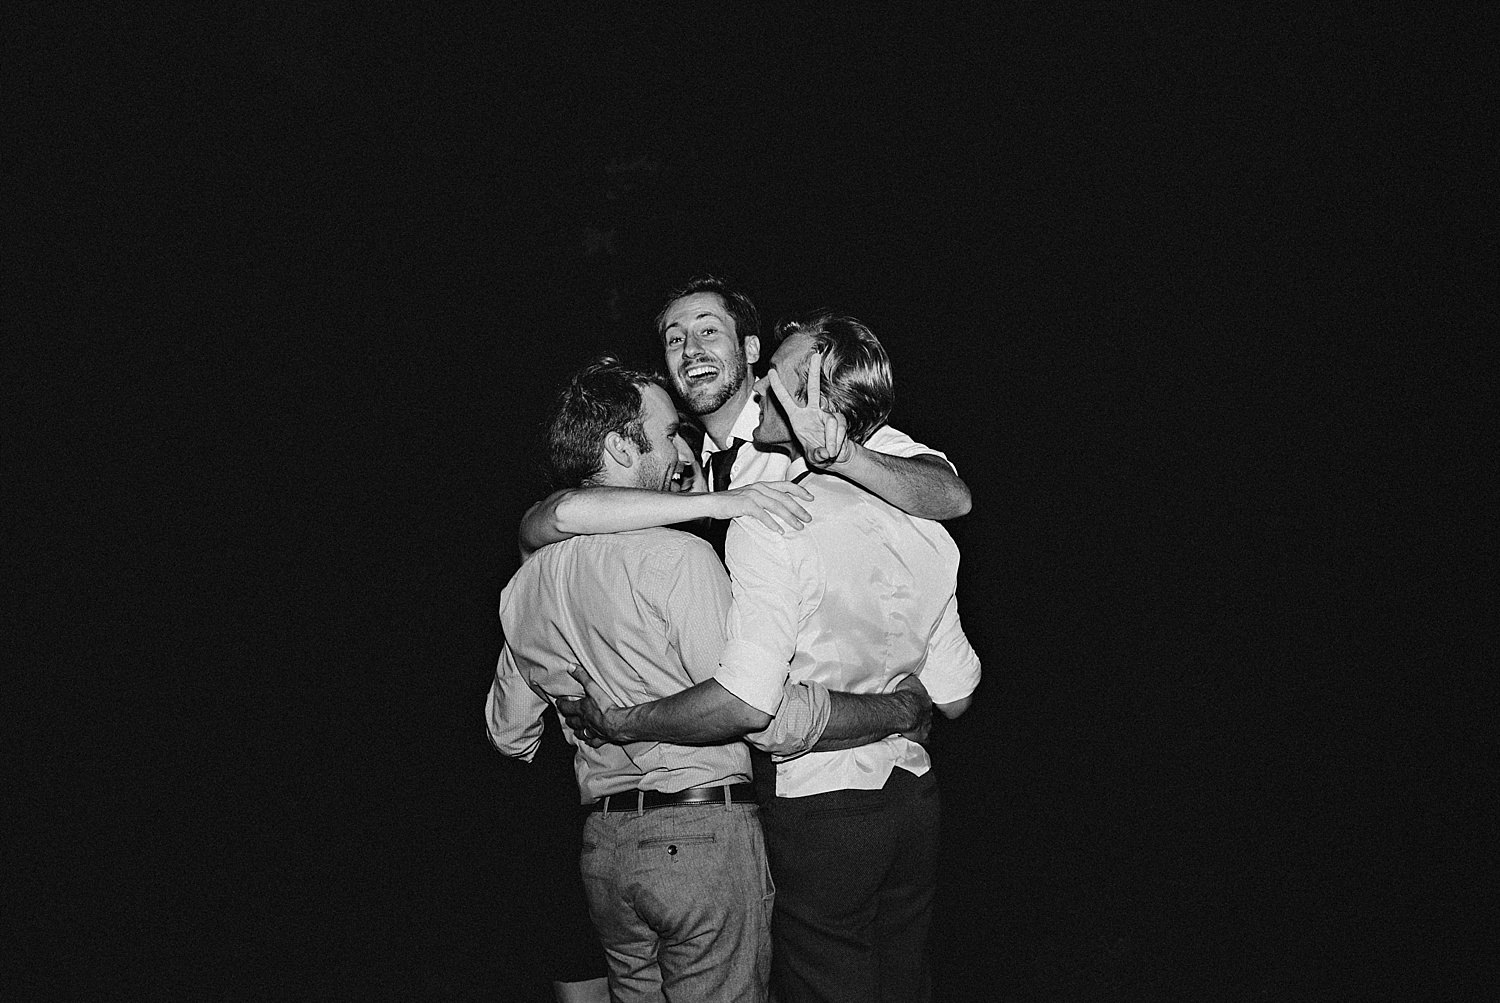 Grooms men in the dark